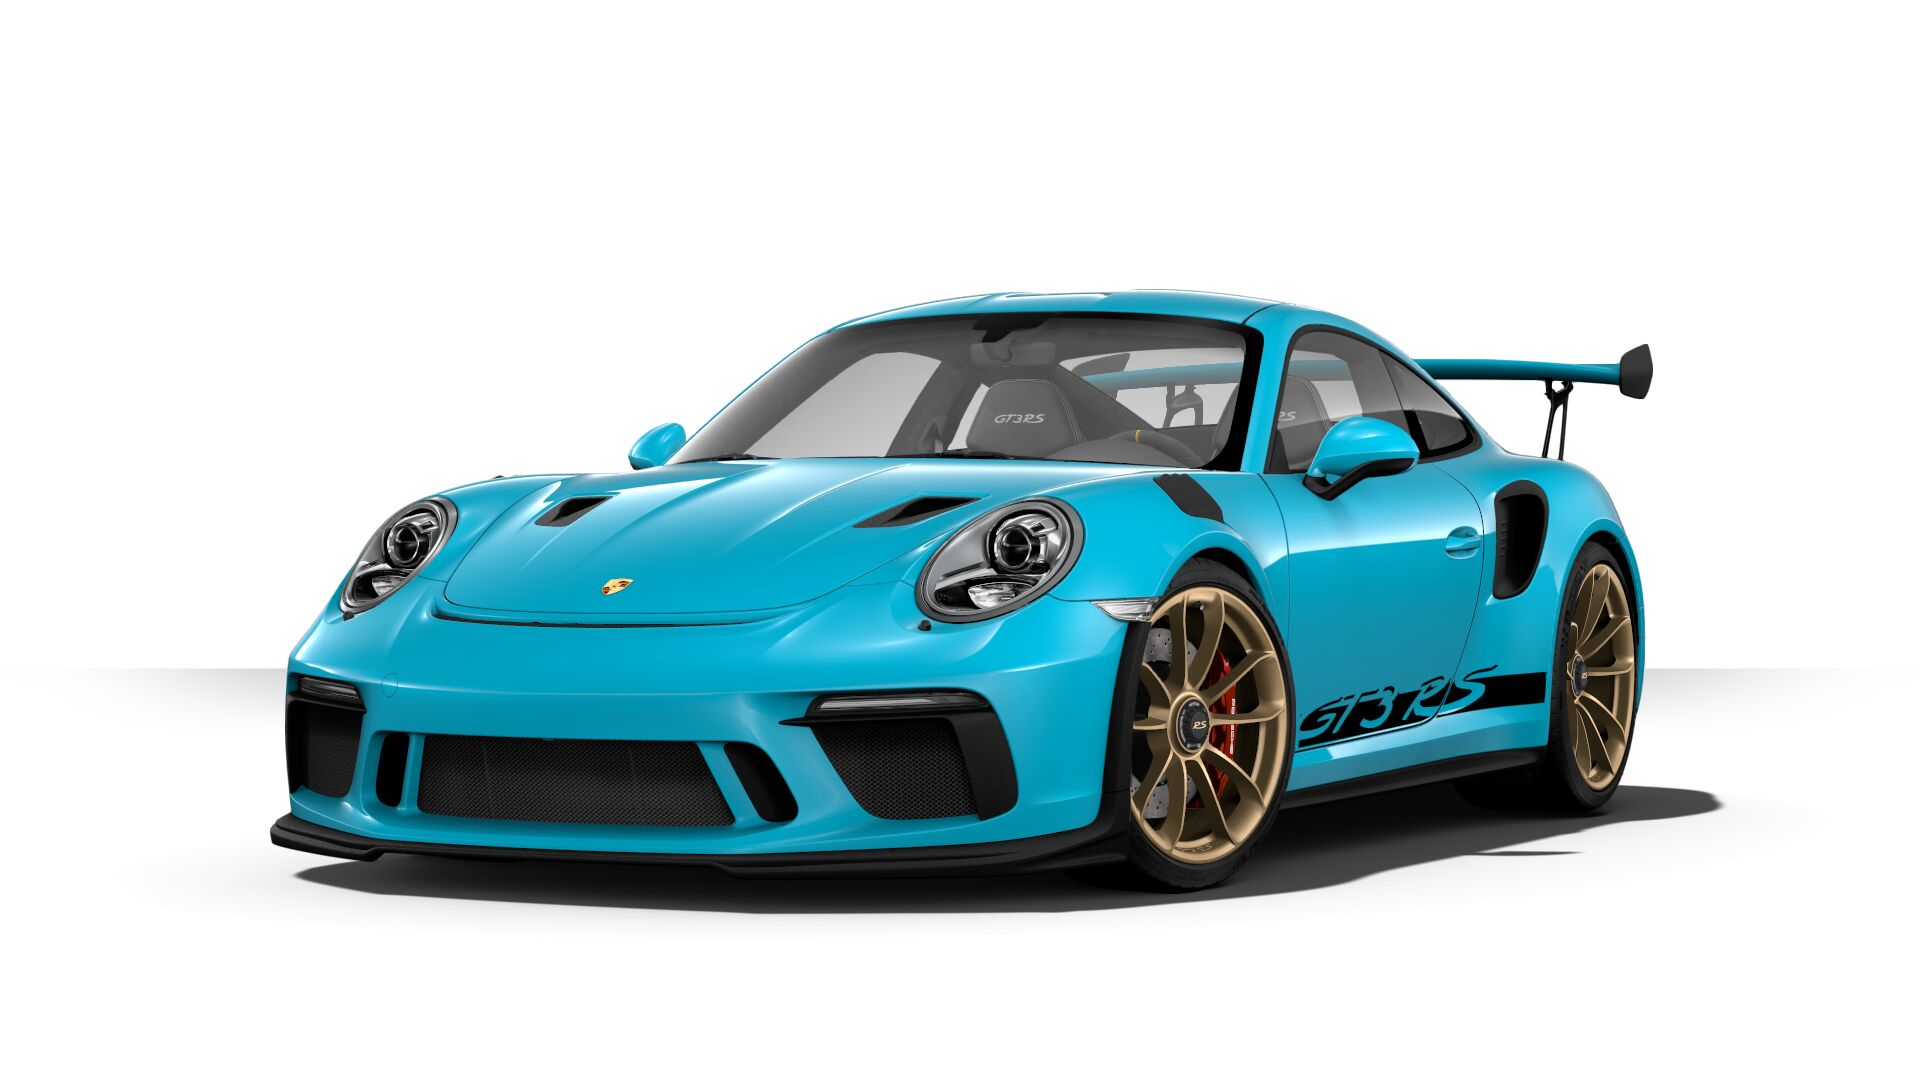 The Porsche 911 Gt3 Rs Configurator Is Online And Boy Does It Have Some Crazy Options Top Speed